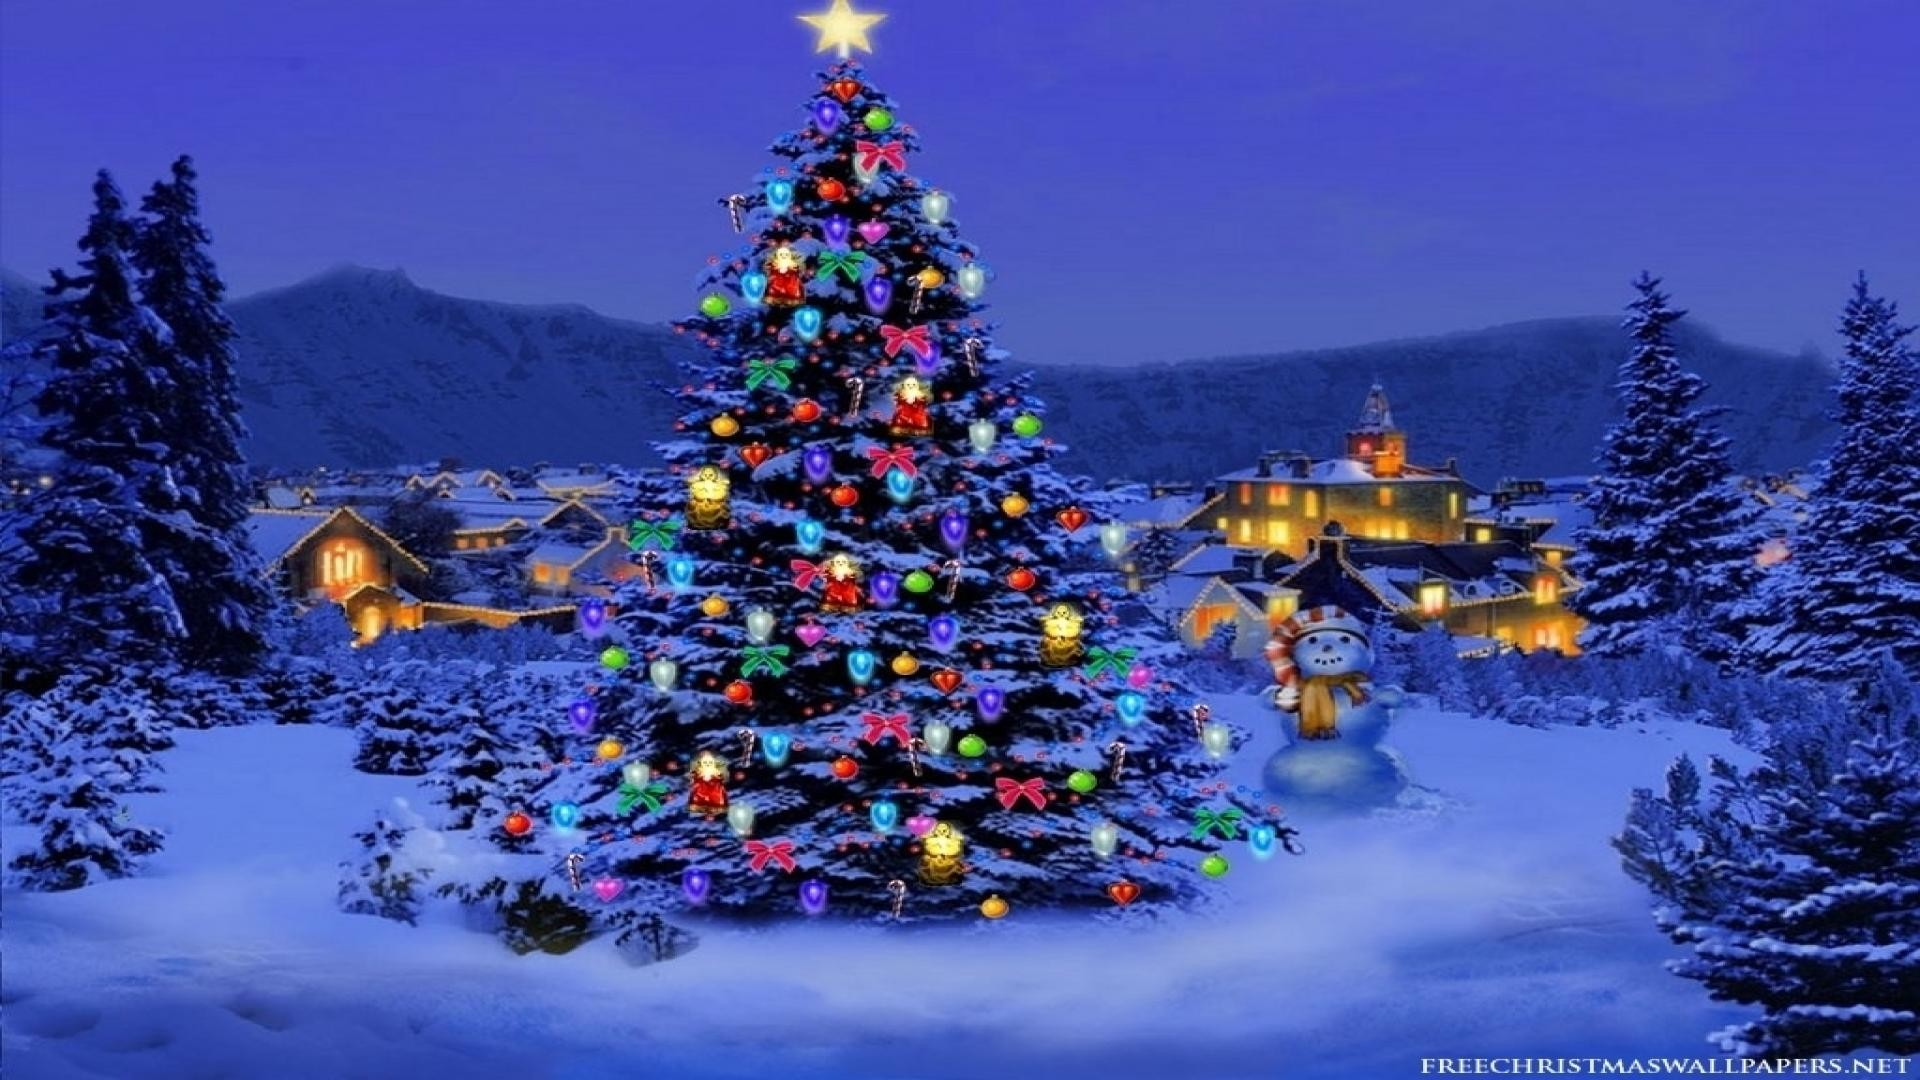 Christmas Wallpapers For Desktop 1920x1080 (64+ Images